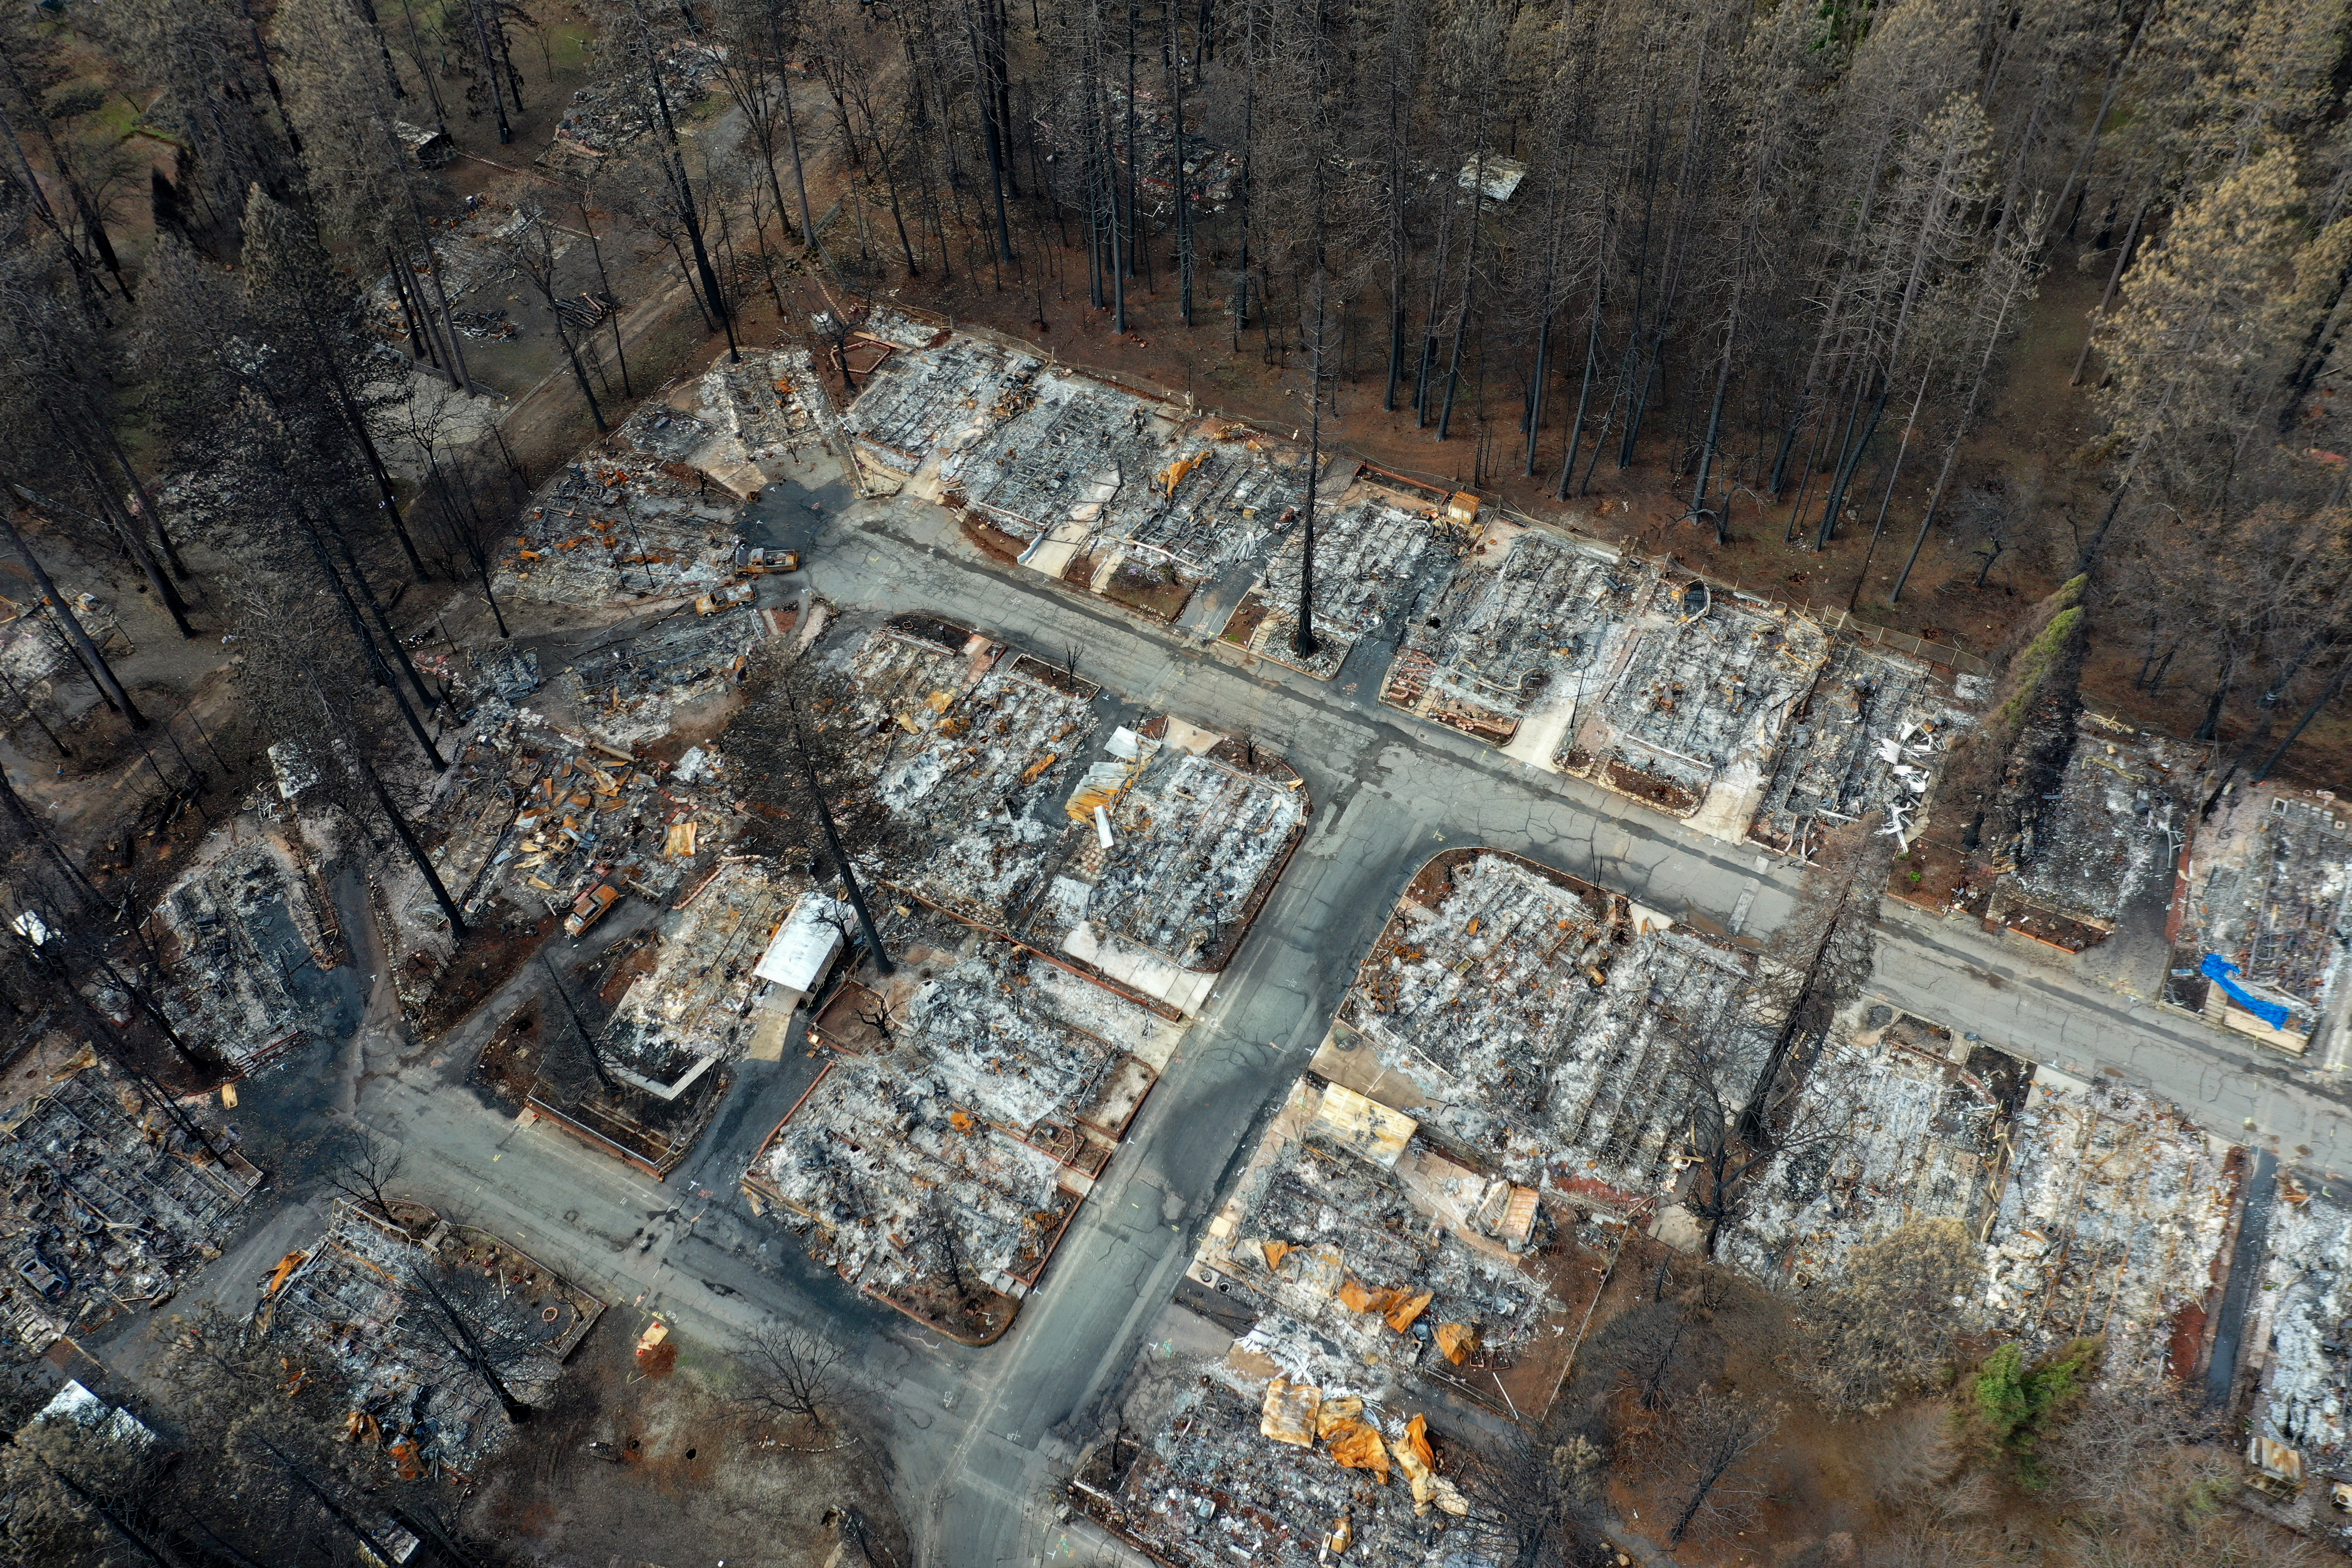 An aerial view of homes destroyed by the Camp Fire in Paradise, California.